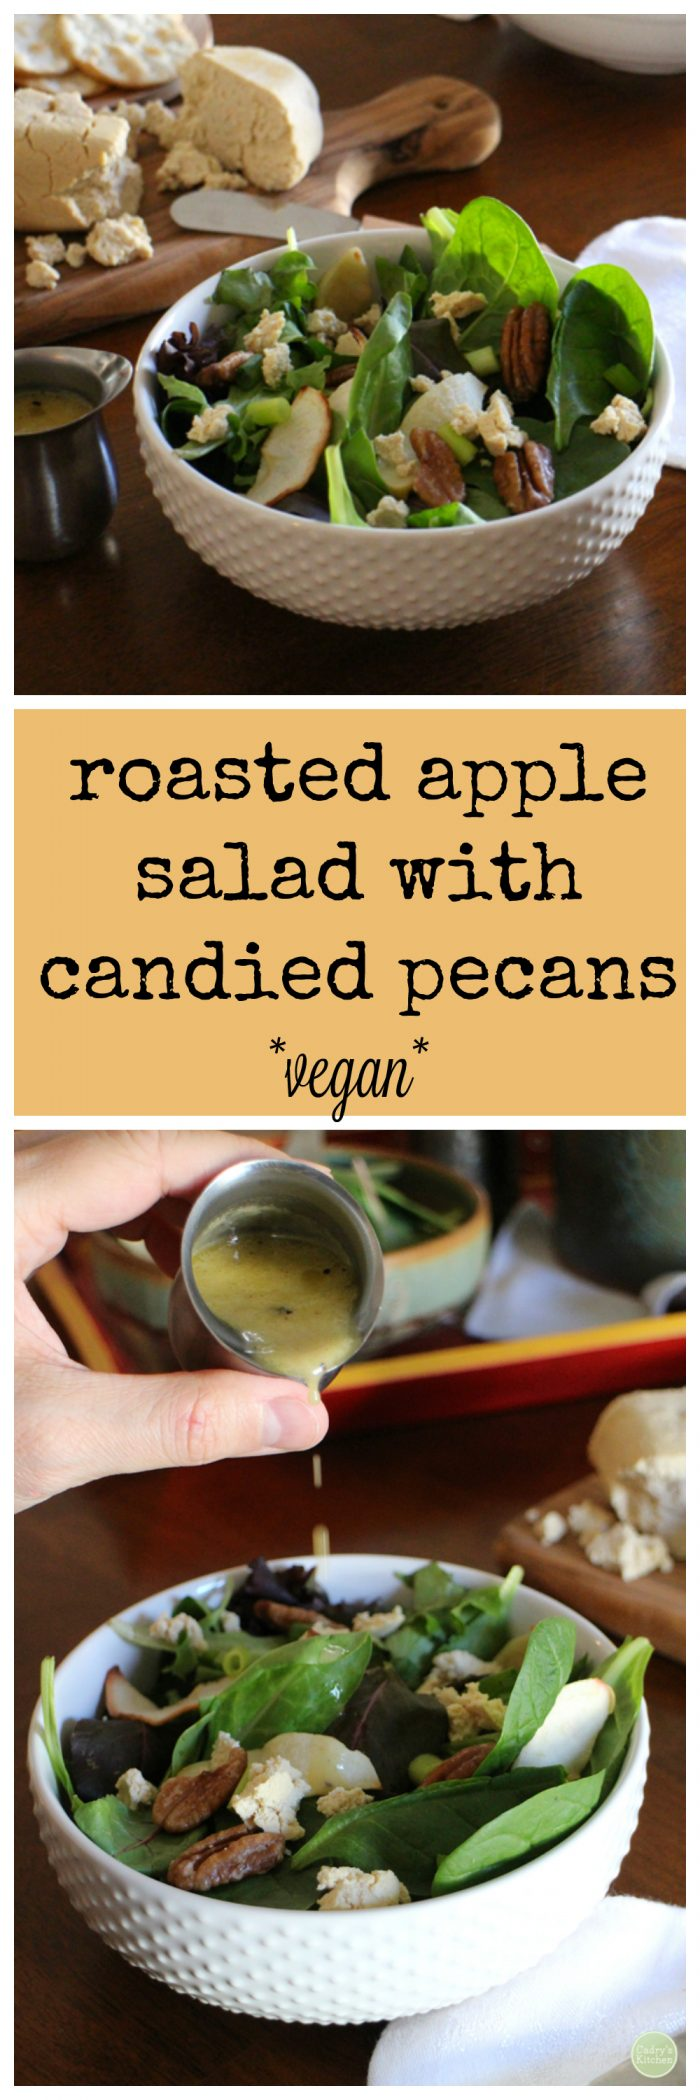 Roasted apple salad with candied pecans | cadryskitchen.com